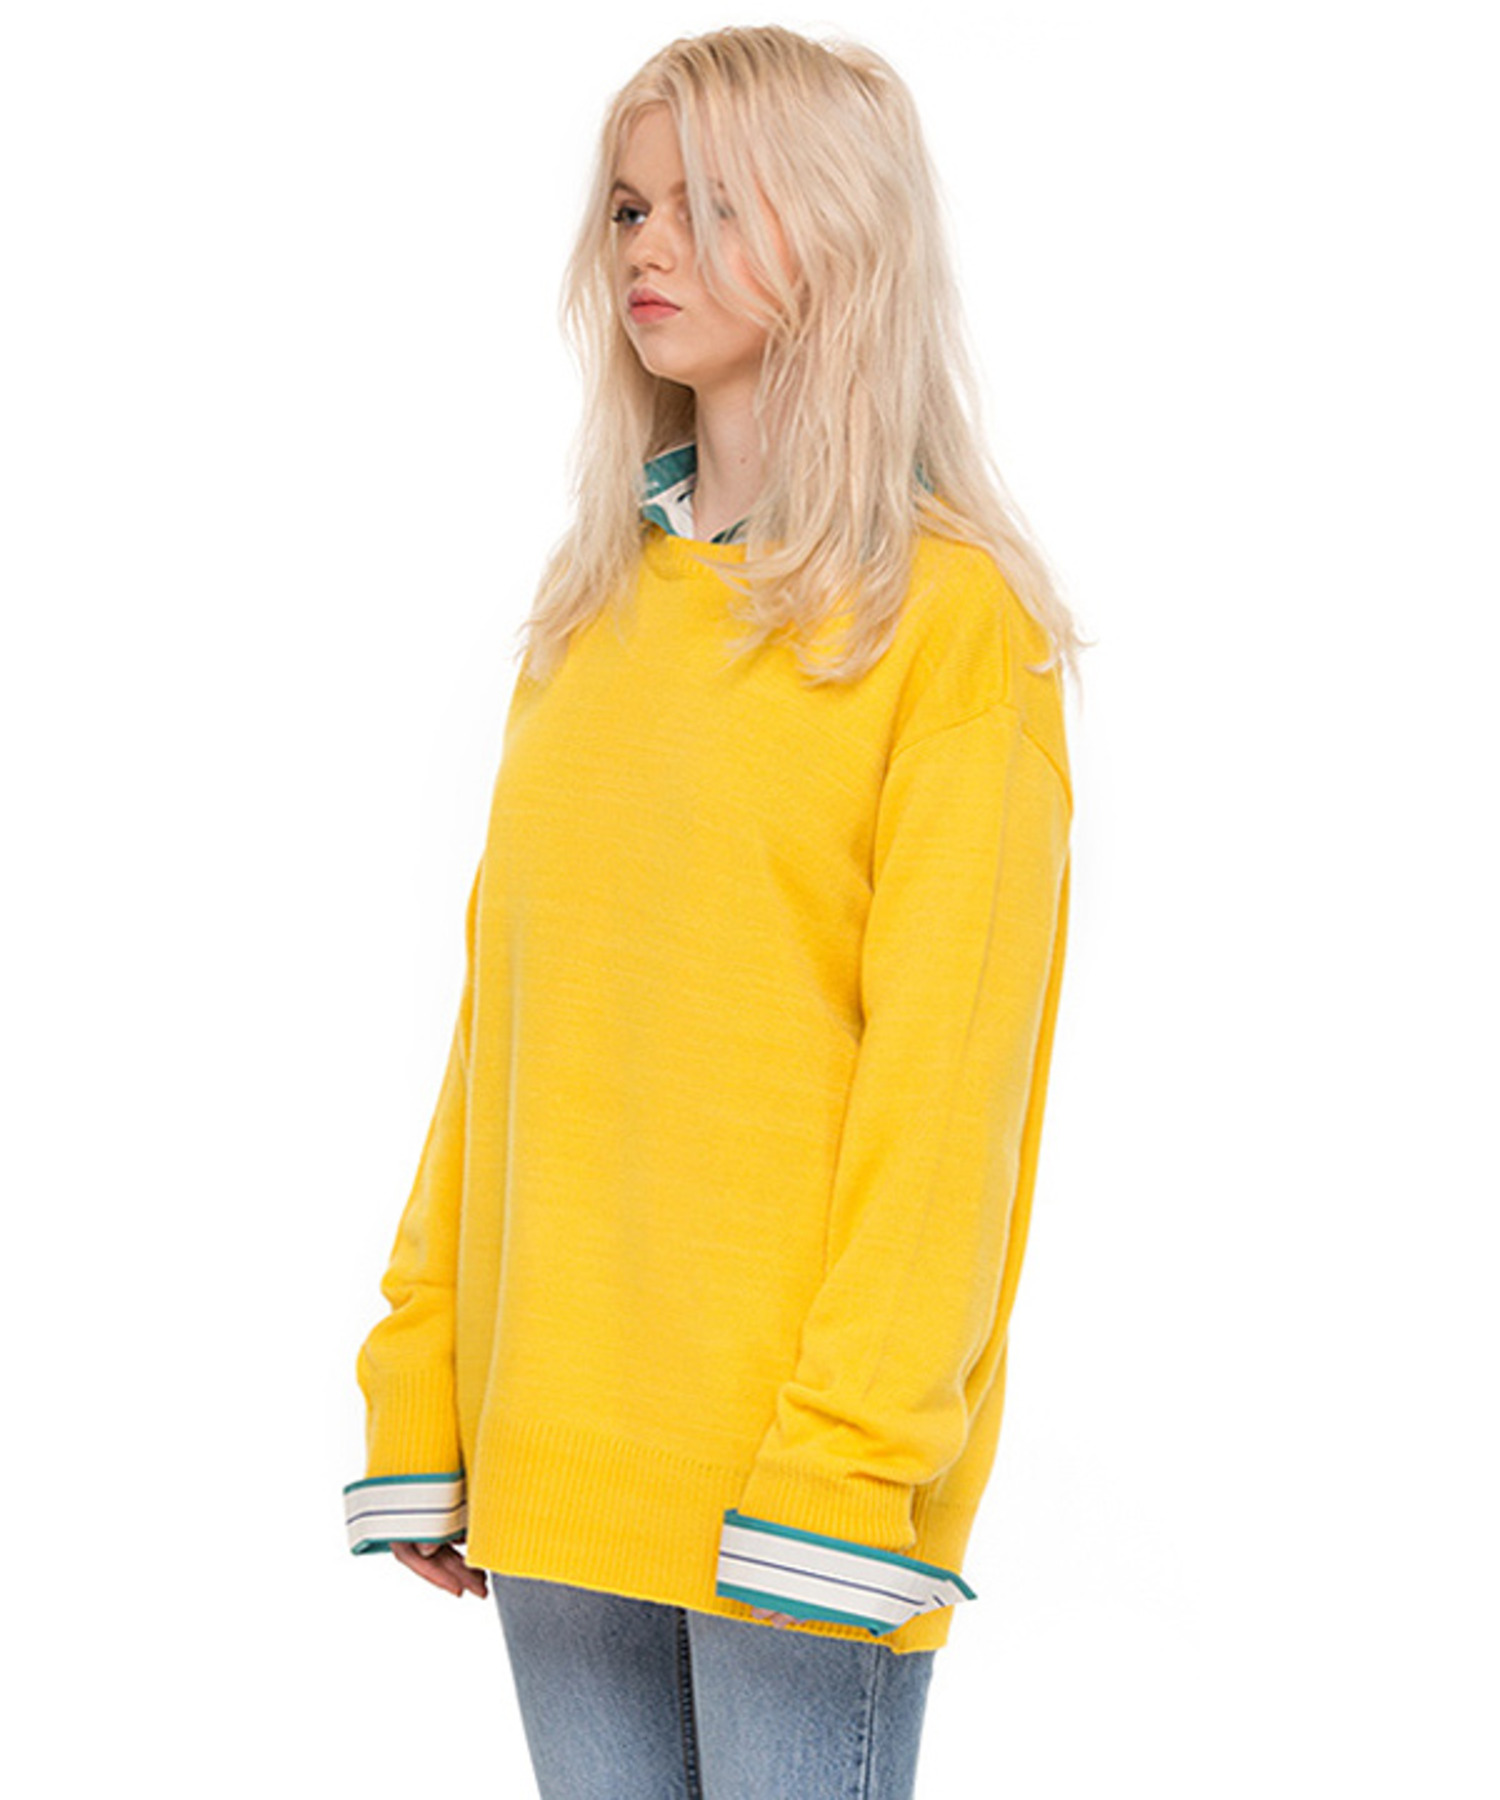 PASTEL KNIT YELLOW